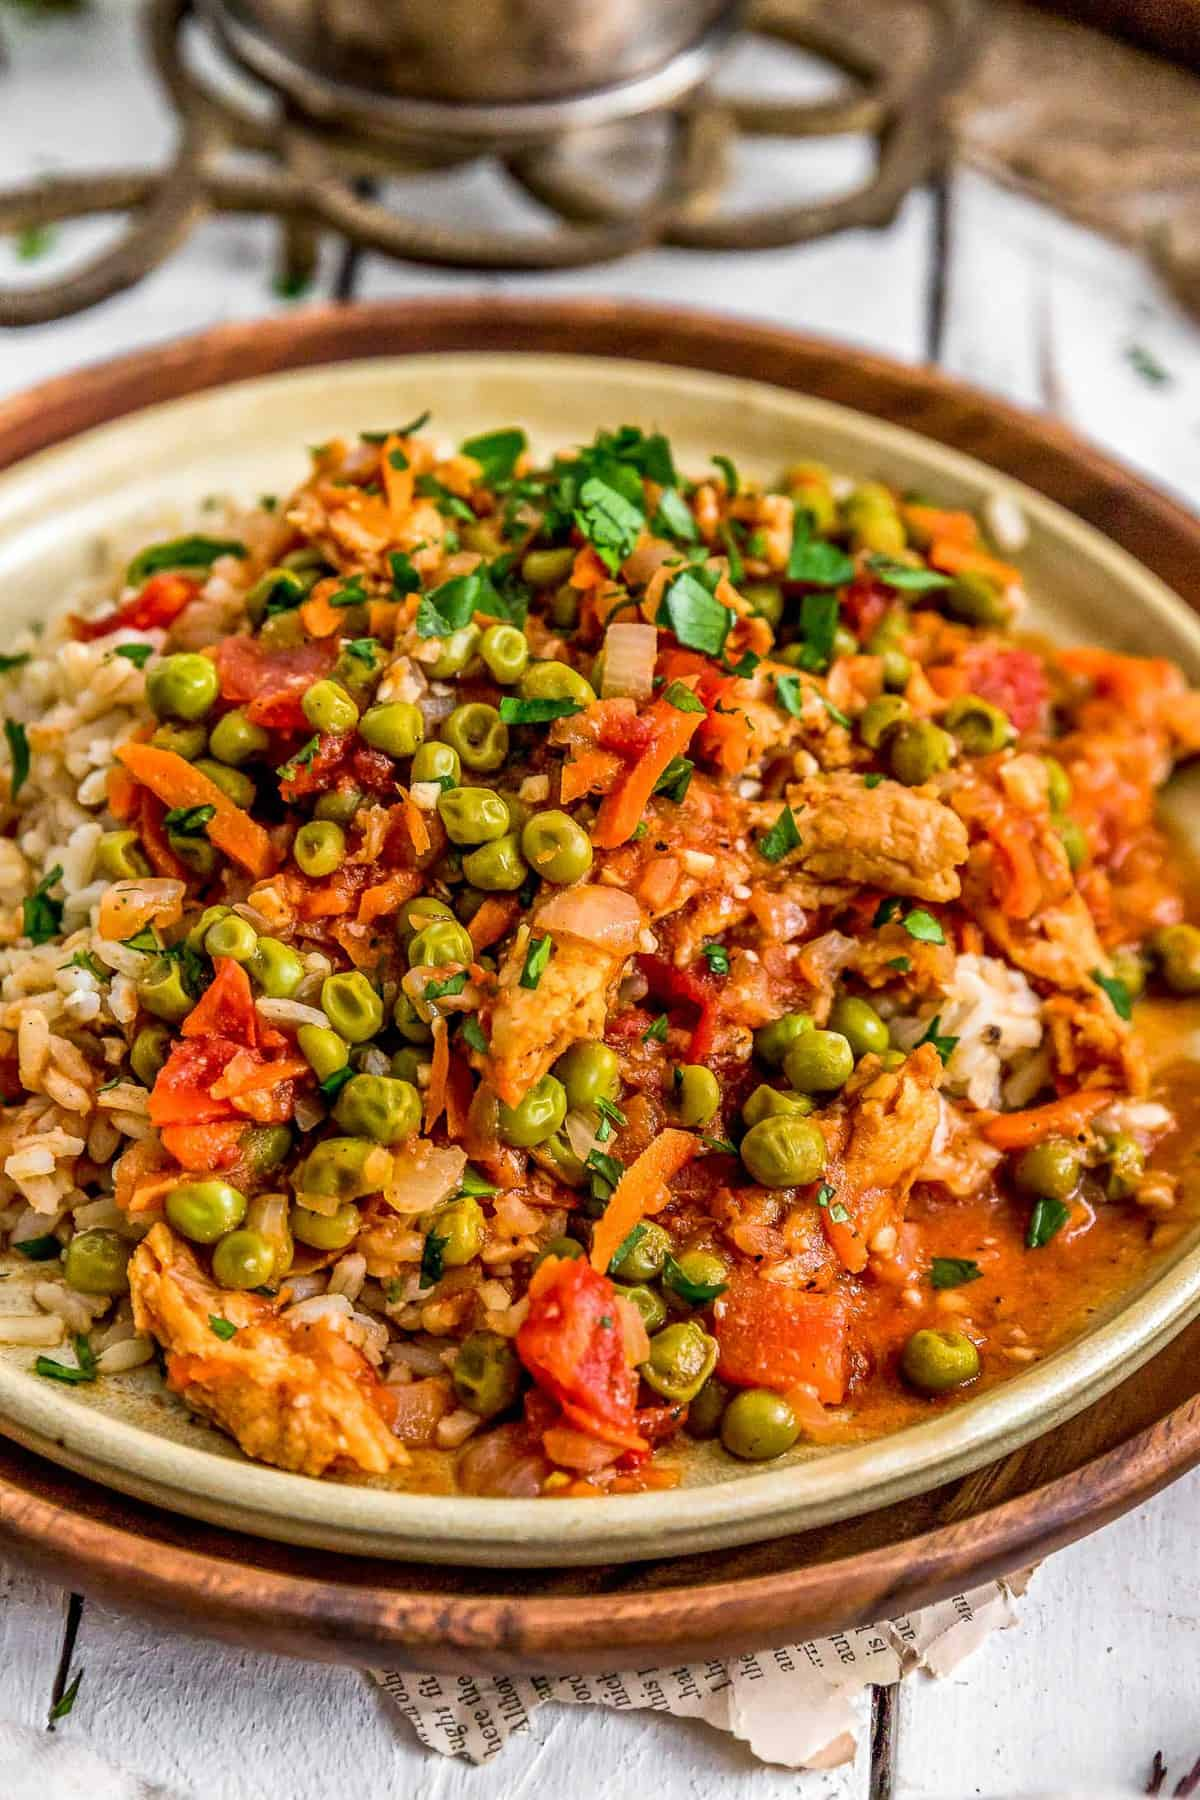 Lebanese Soy Curls and Pea Stew (Bazilla)